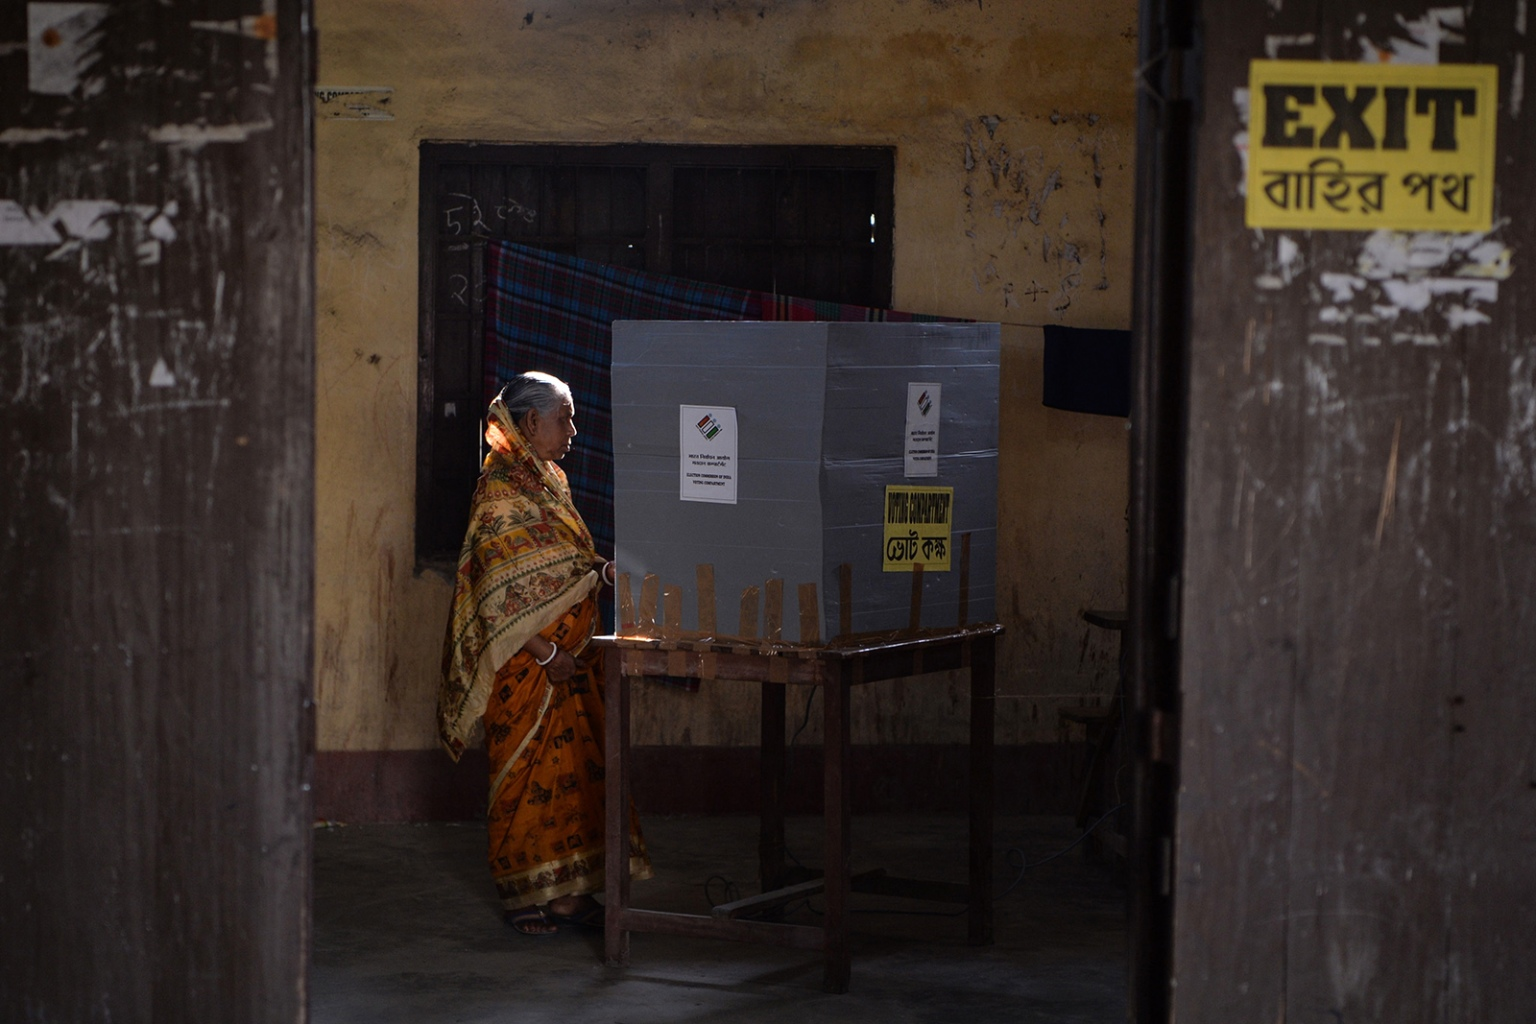 A woman votes at a polling station during India's general election in Cooch Behar, West Bengal, on April 11. DIPTENDU DUTTA/AFP/Getty Images